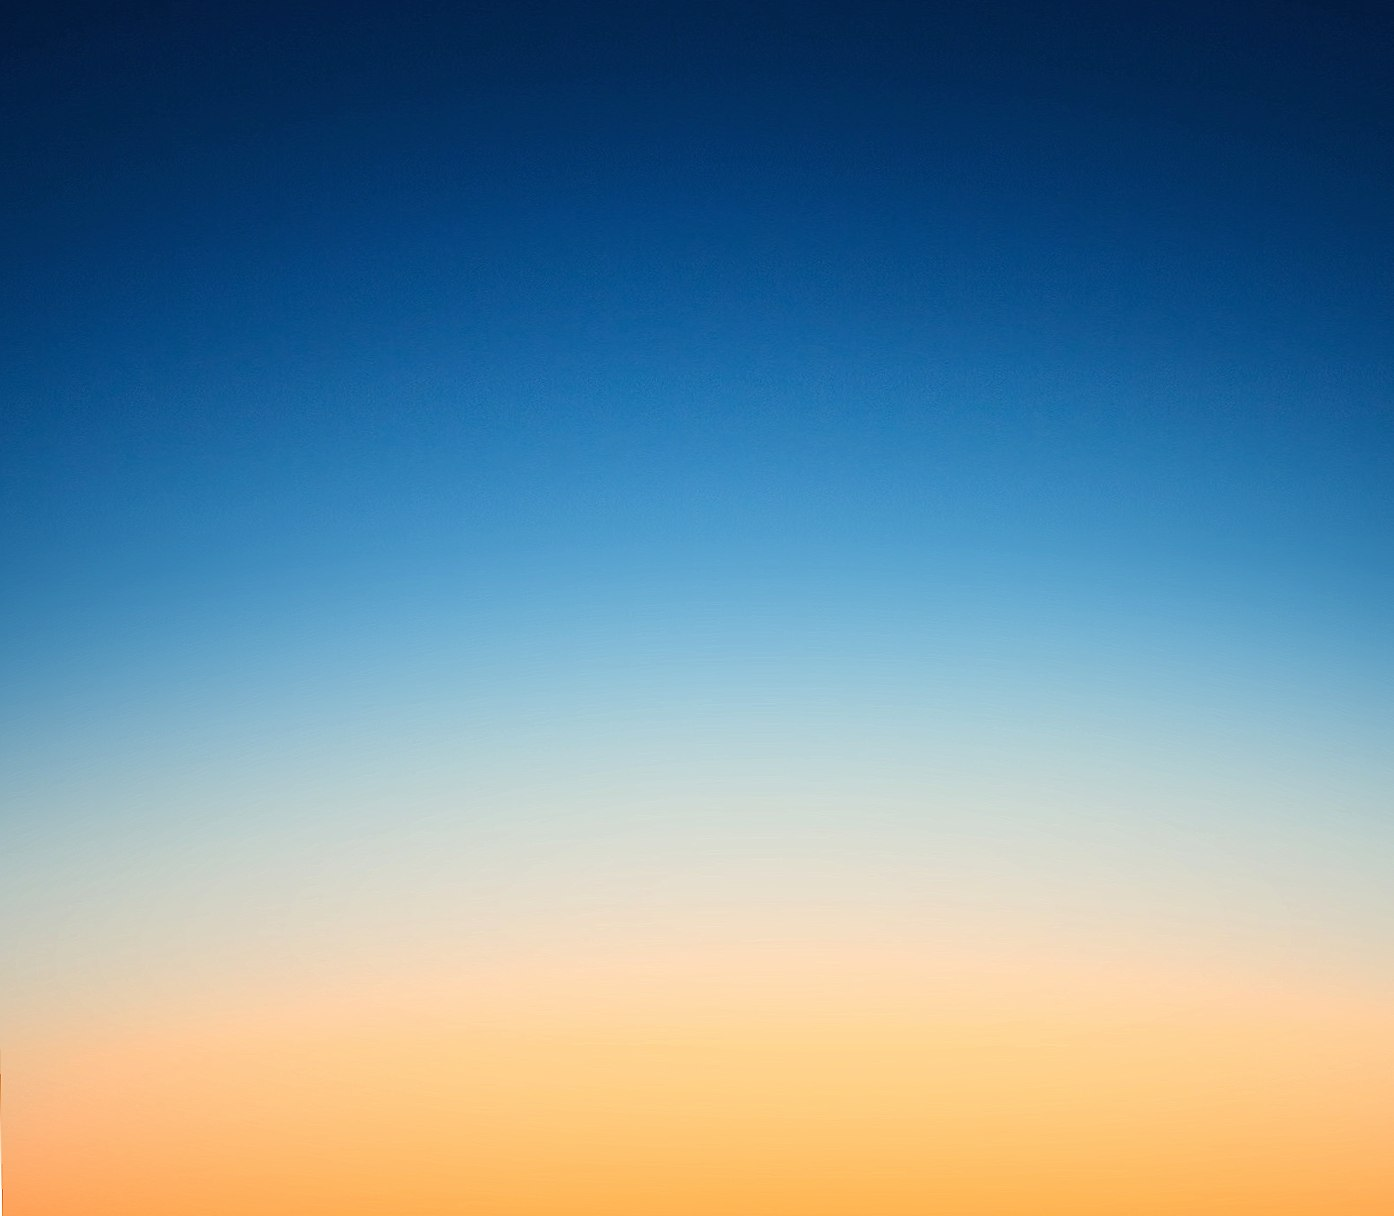 minimal ios at 640 x 960 iPhone 4 size wallpapers HD quality